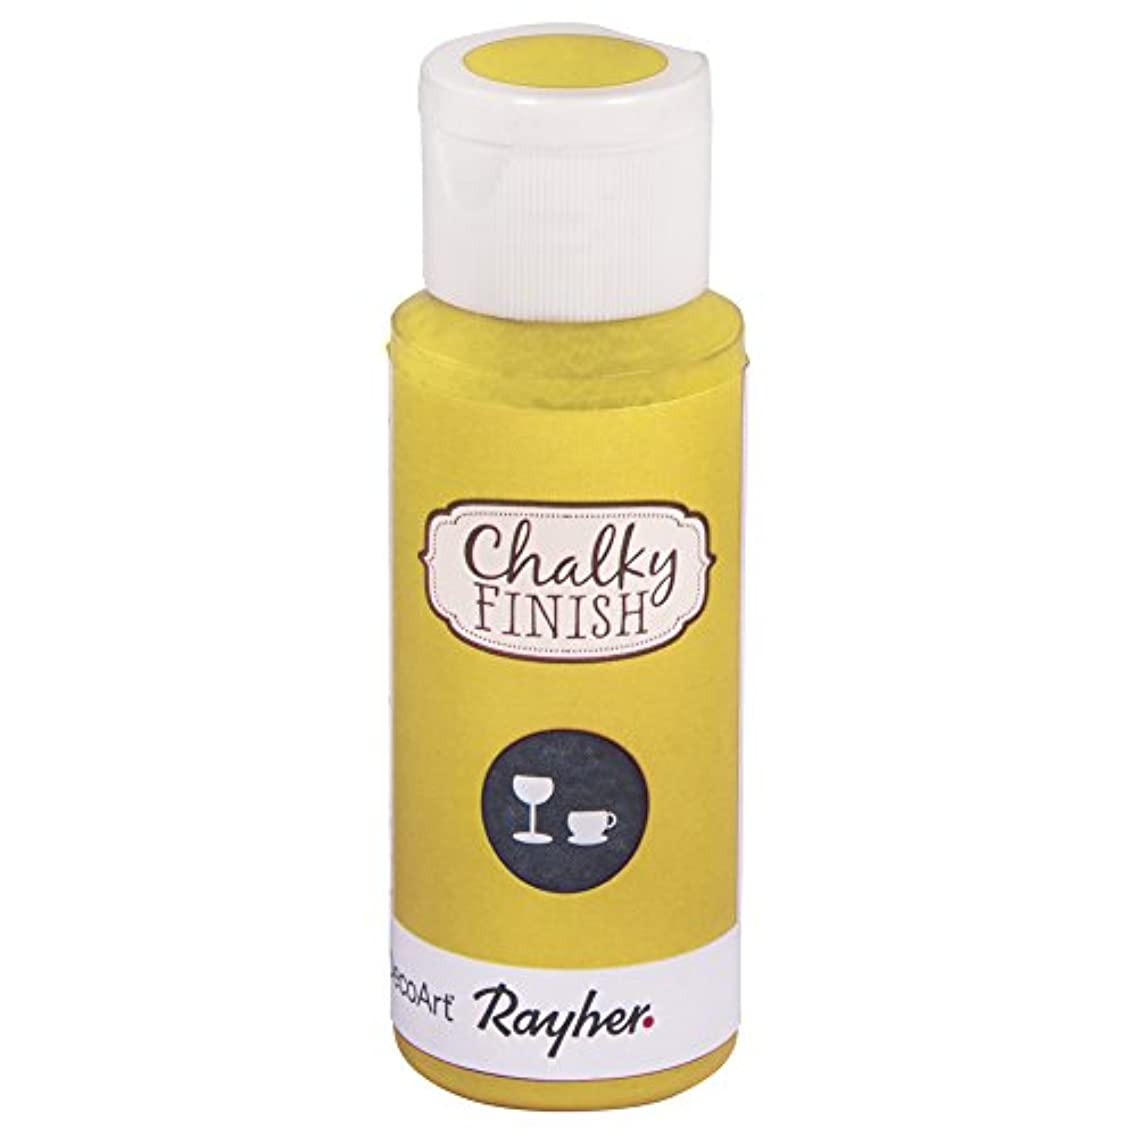 Rayher Chalky Finish Paint Bottle for Glass, Yellow Light, 59 ml